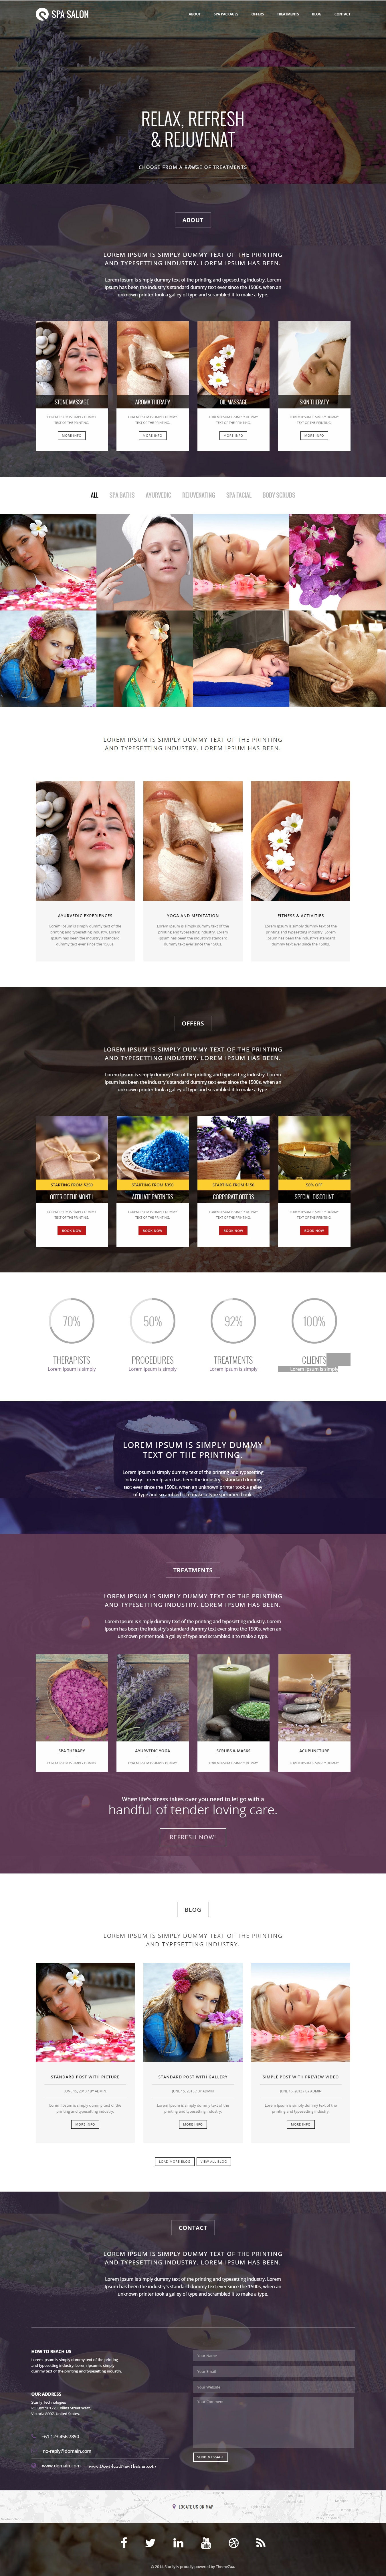 Spa and Salon One Page Bootstrap Template